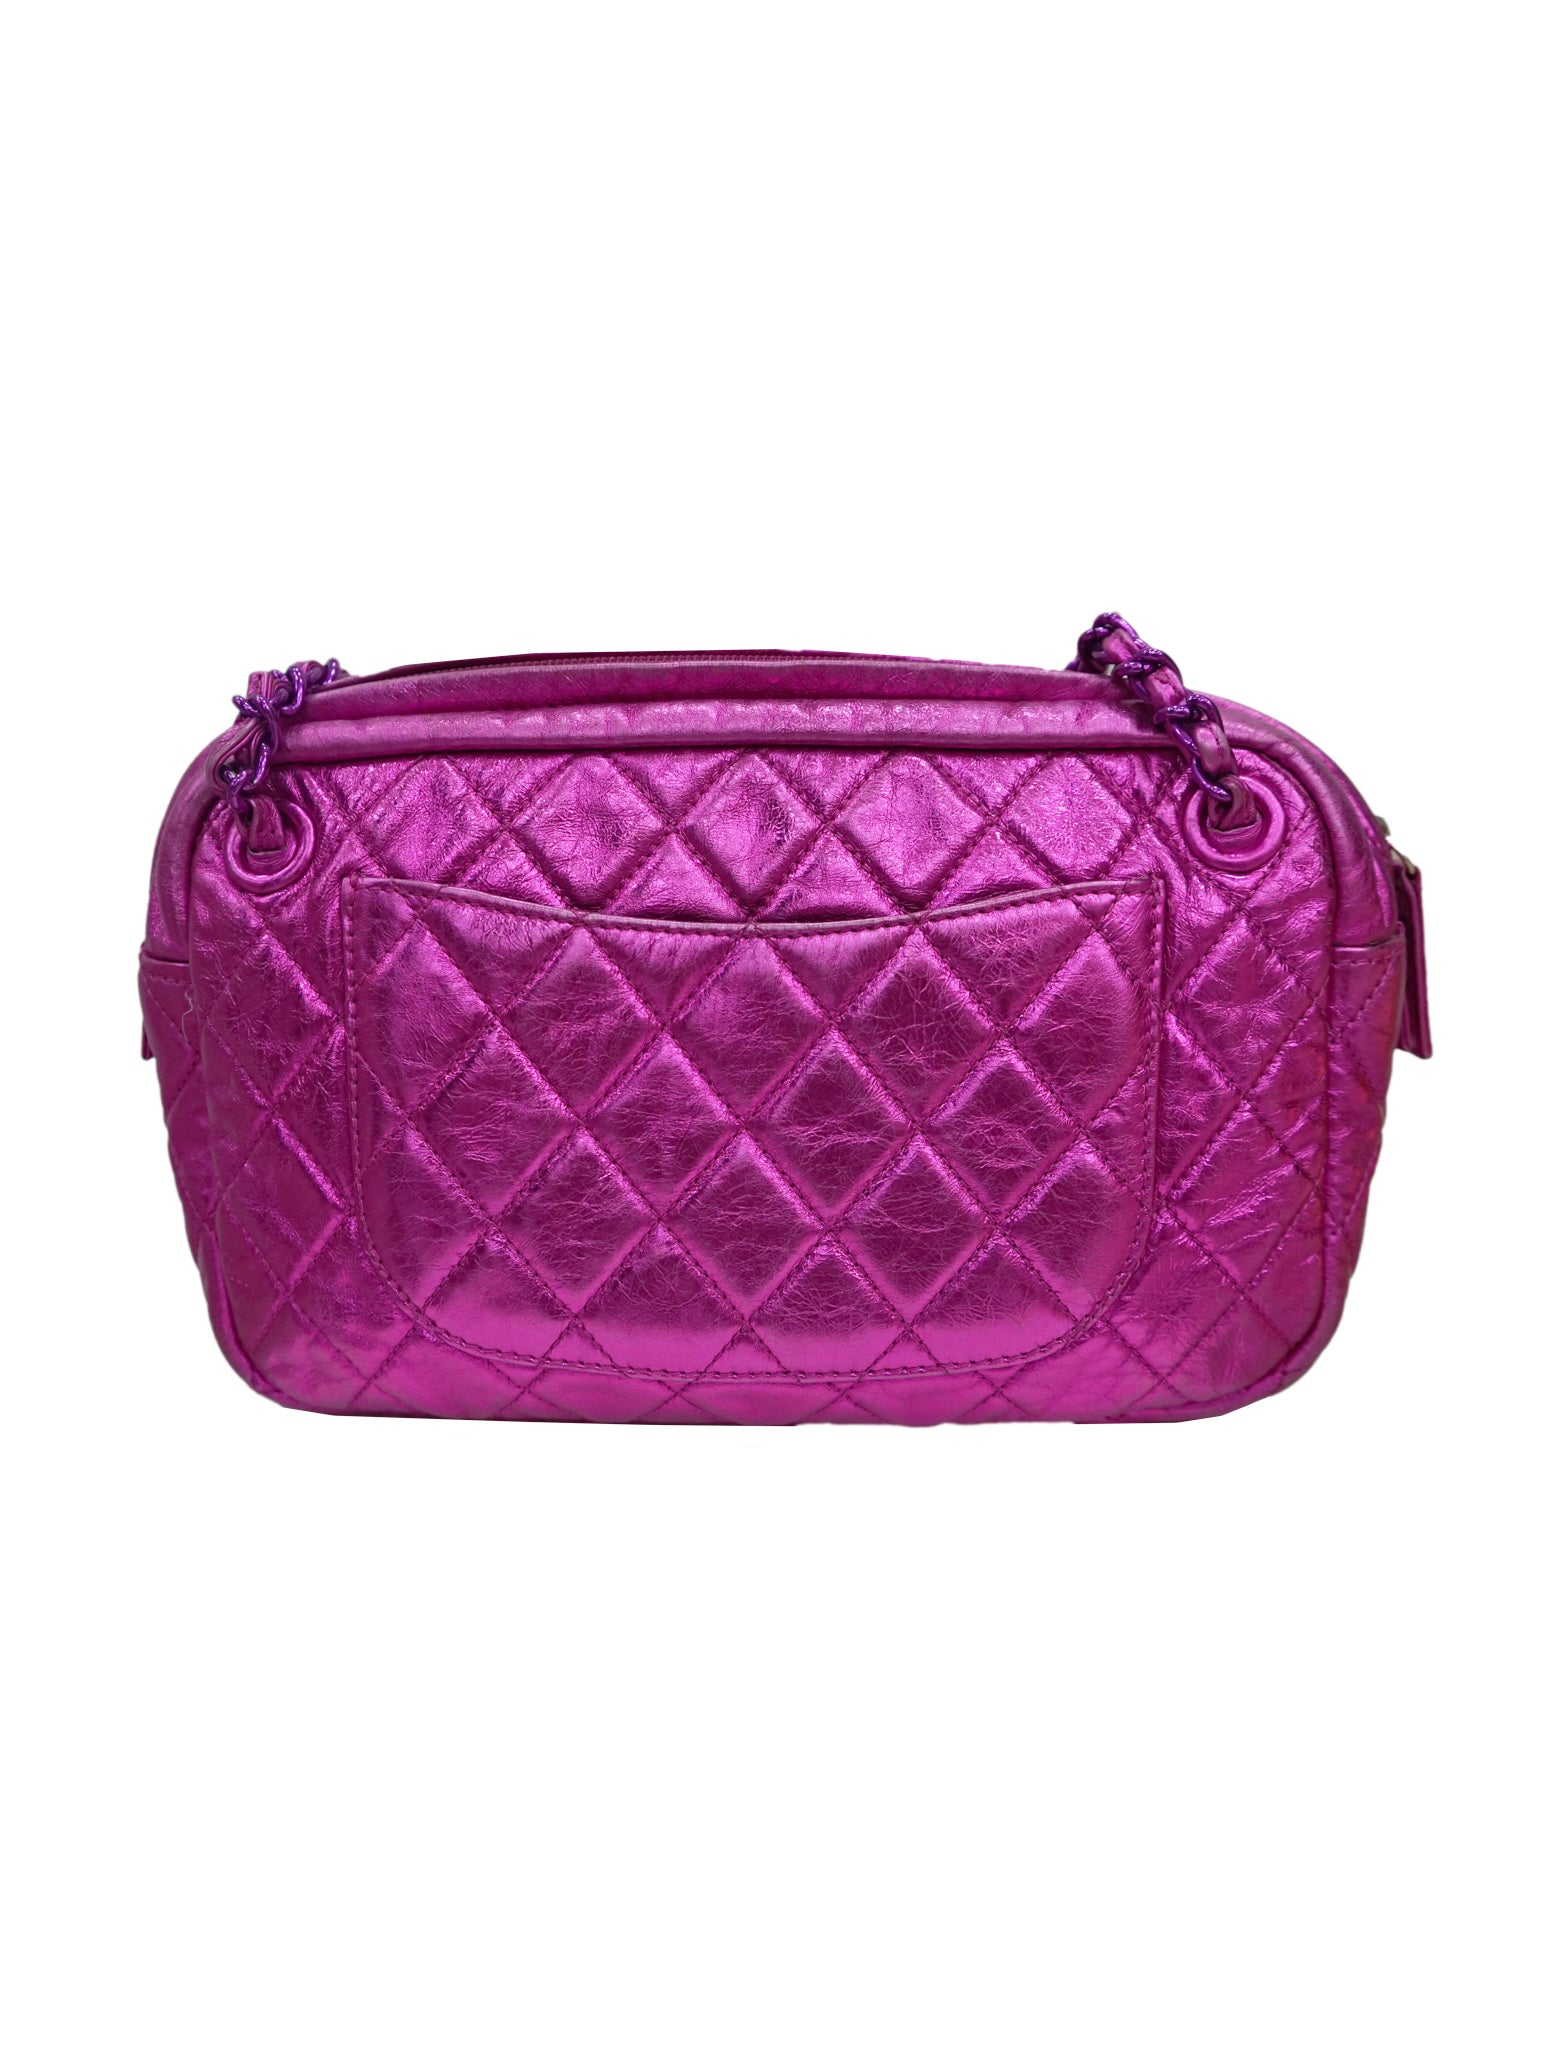 PINK LEATHER MODERN CHAIN SHOULDER BAG